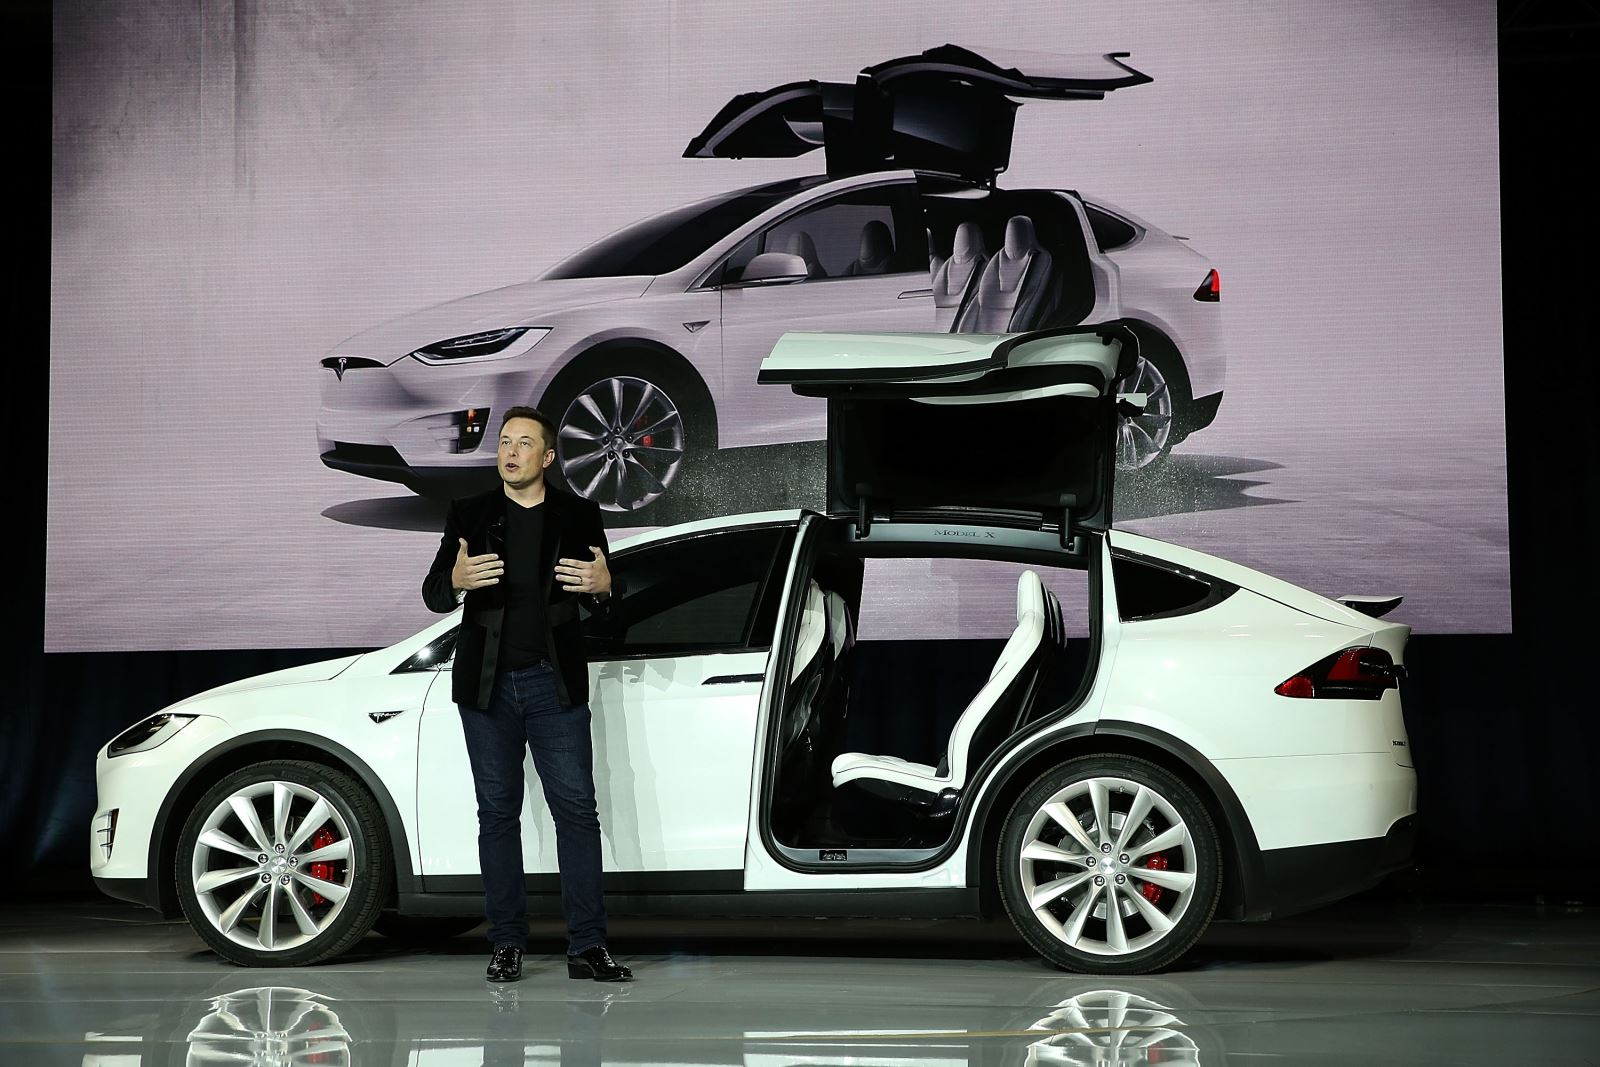 Top 100 Global Innovative Companies - P2 Tesla  - Worldkings